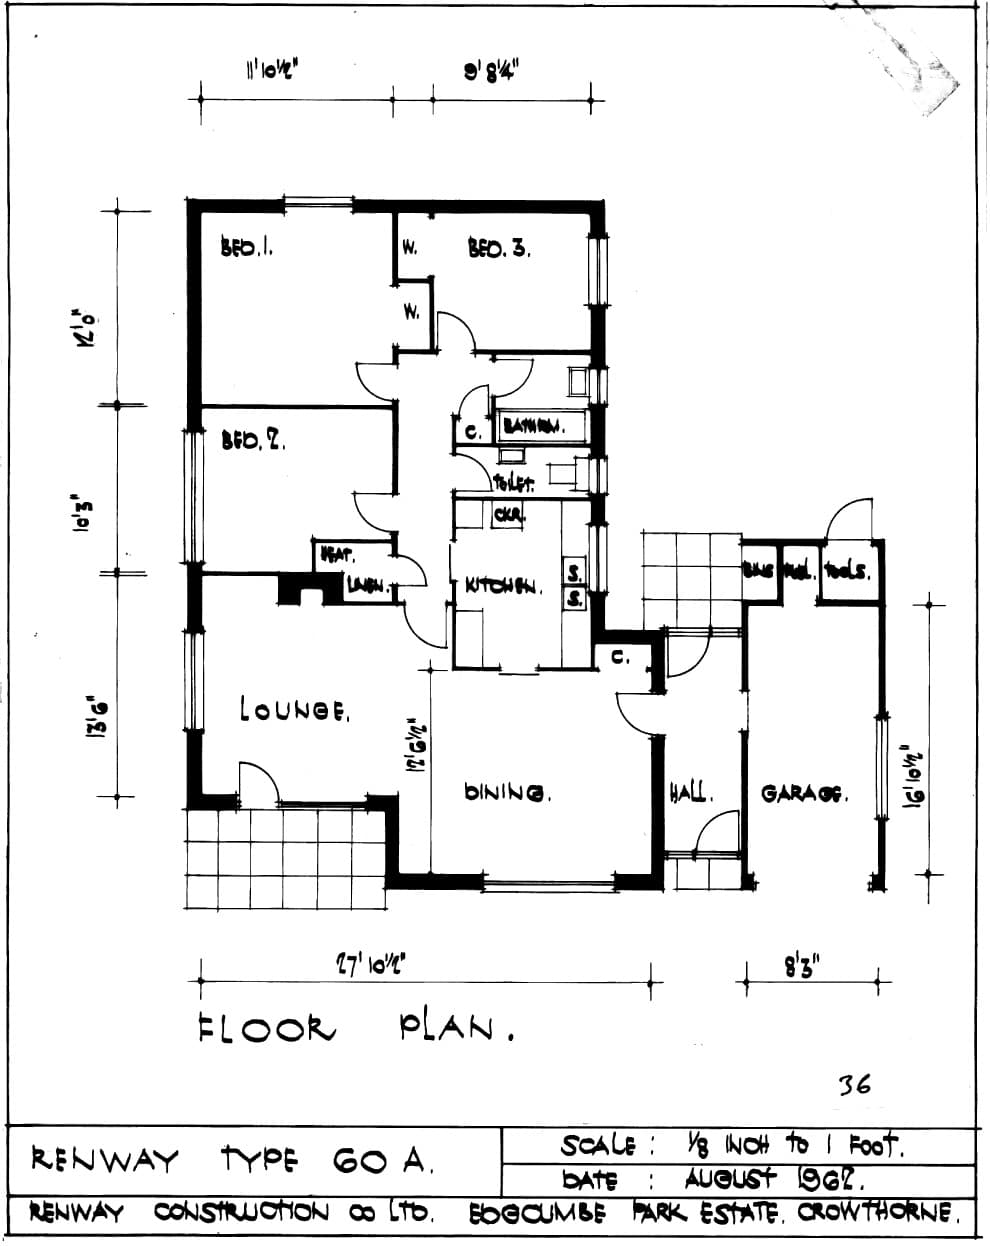 House plans and design architectural designs bungalow houses Types of house plans